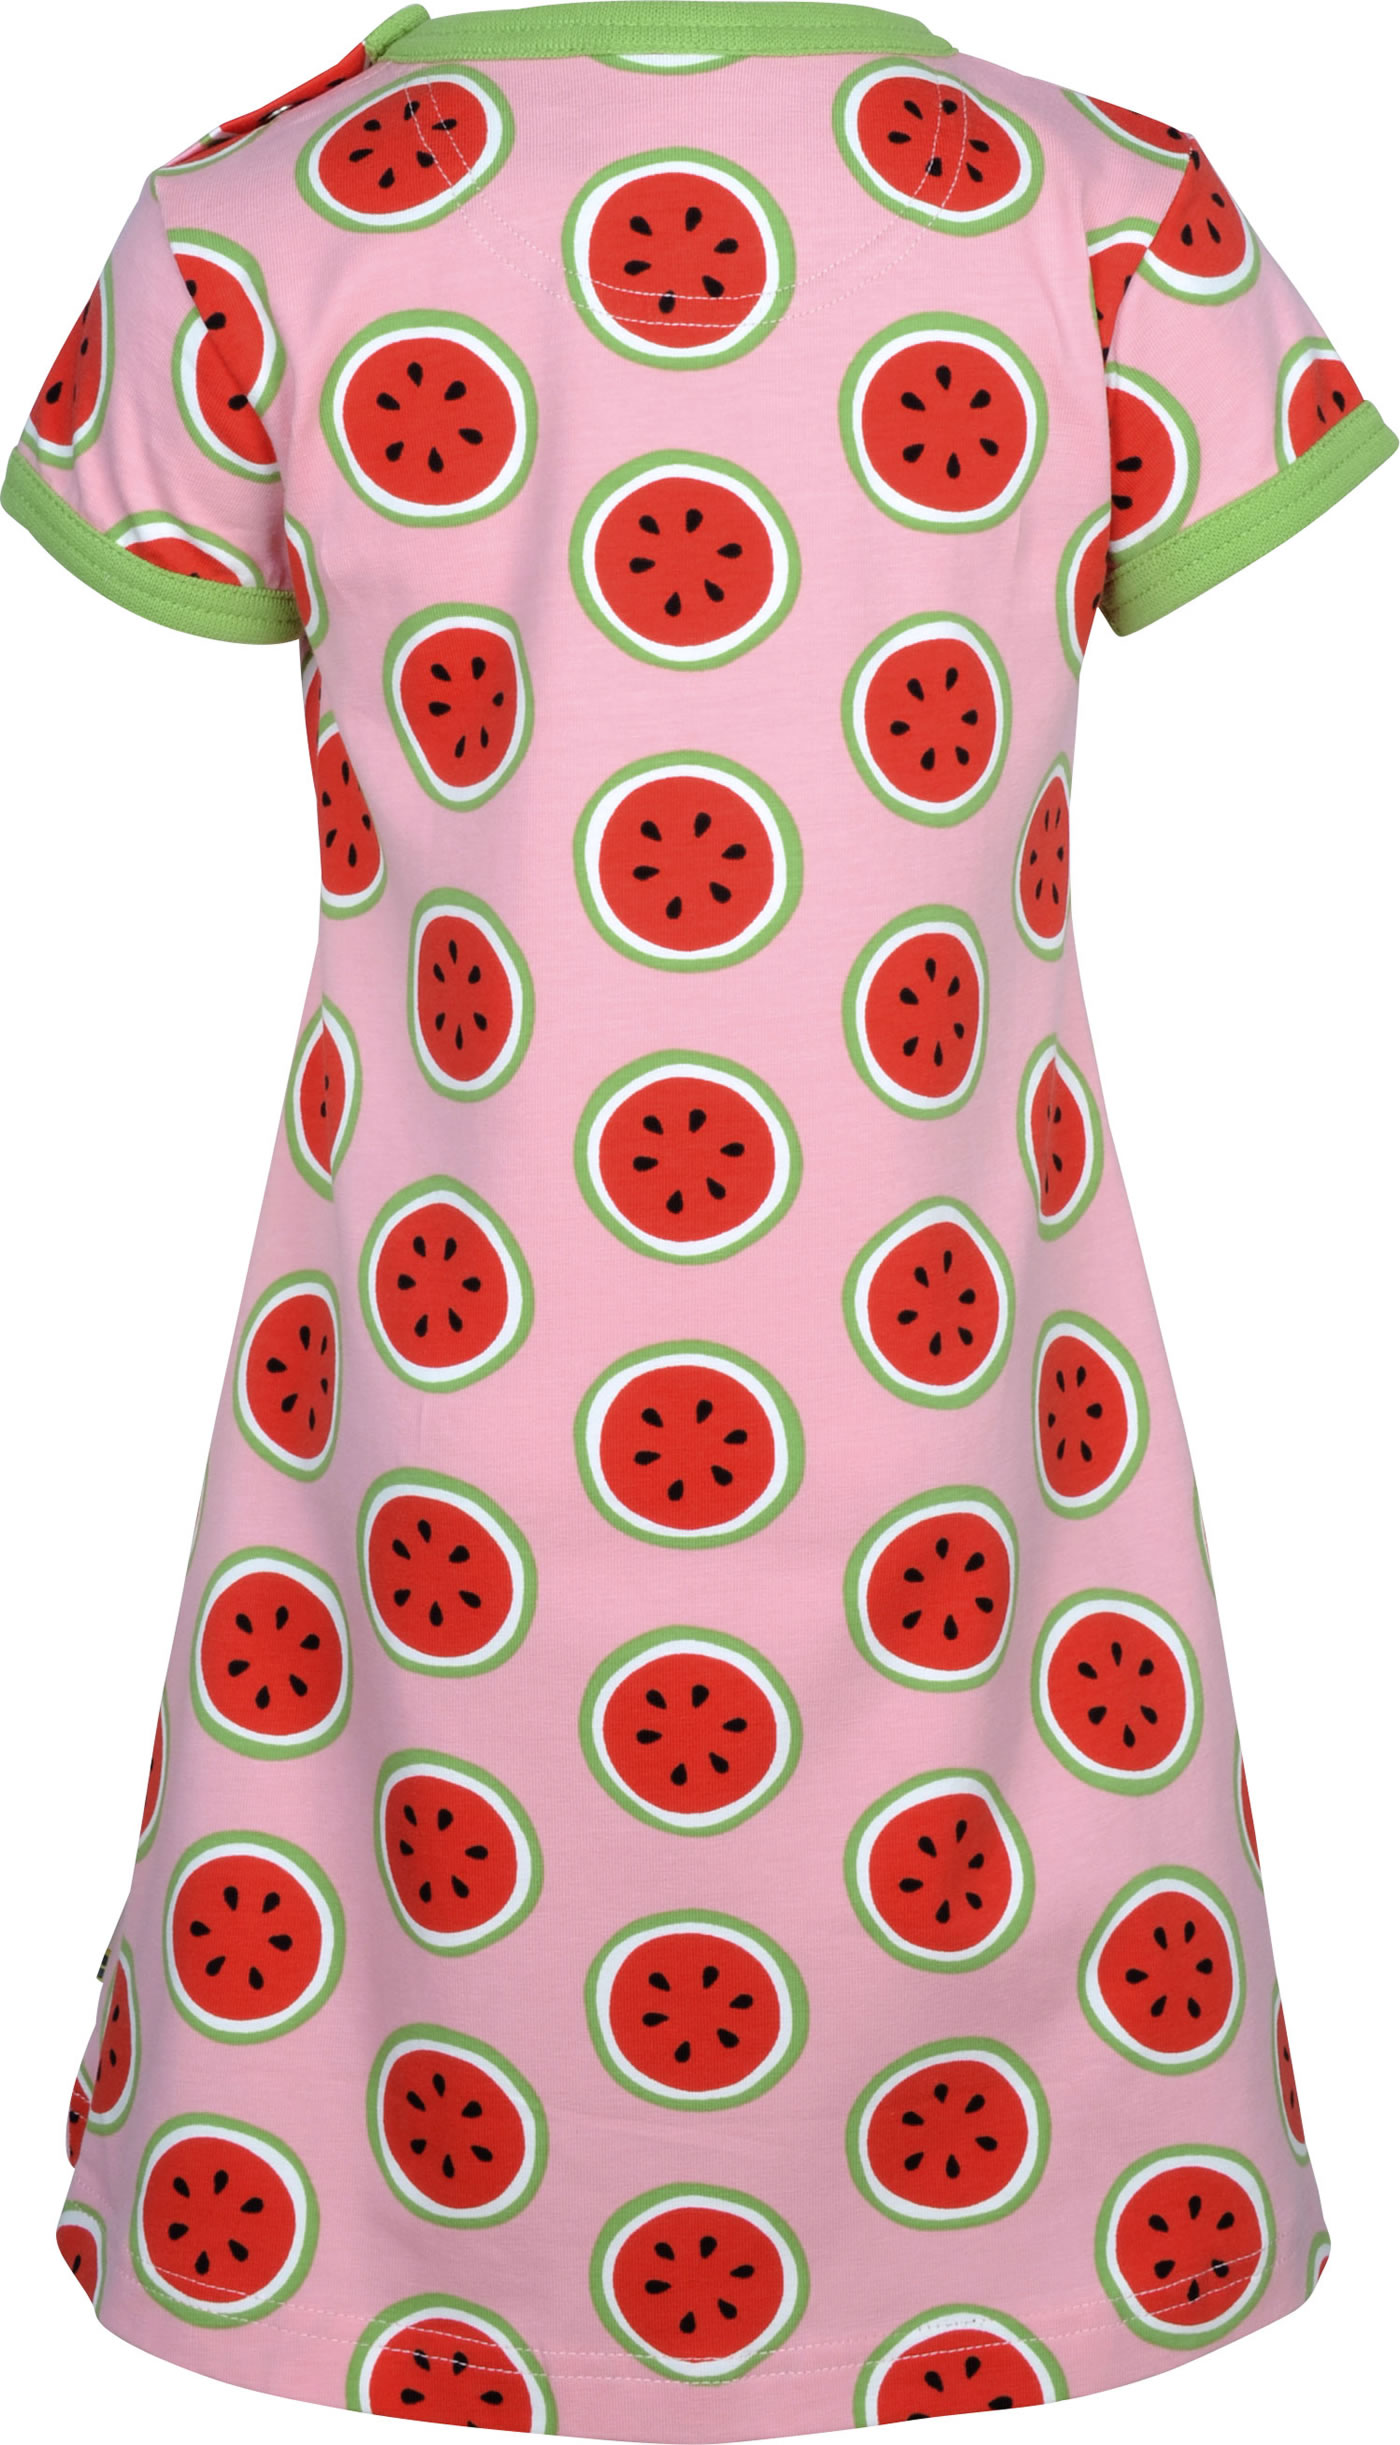 Maxomorra Short Sleeve Dress Watermelon Love